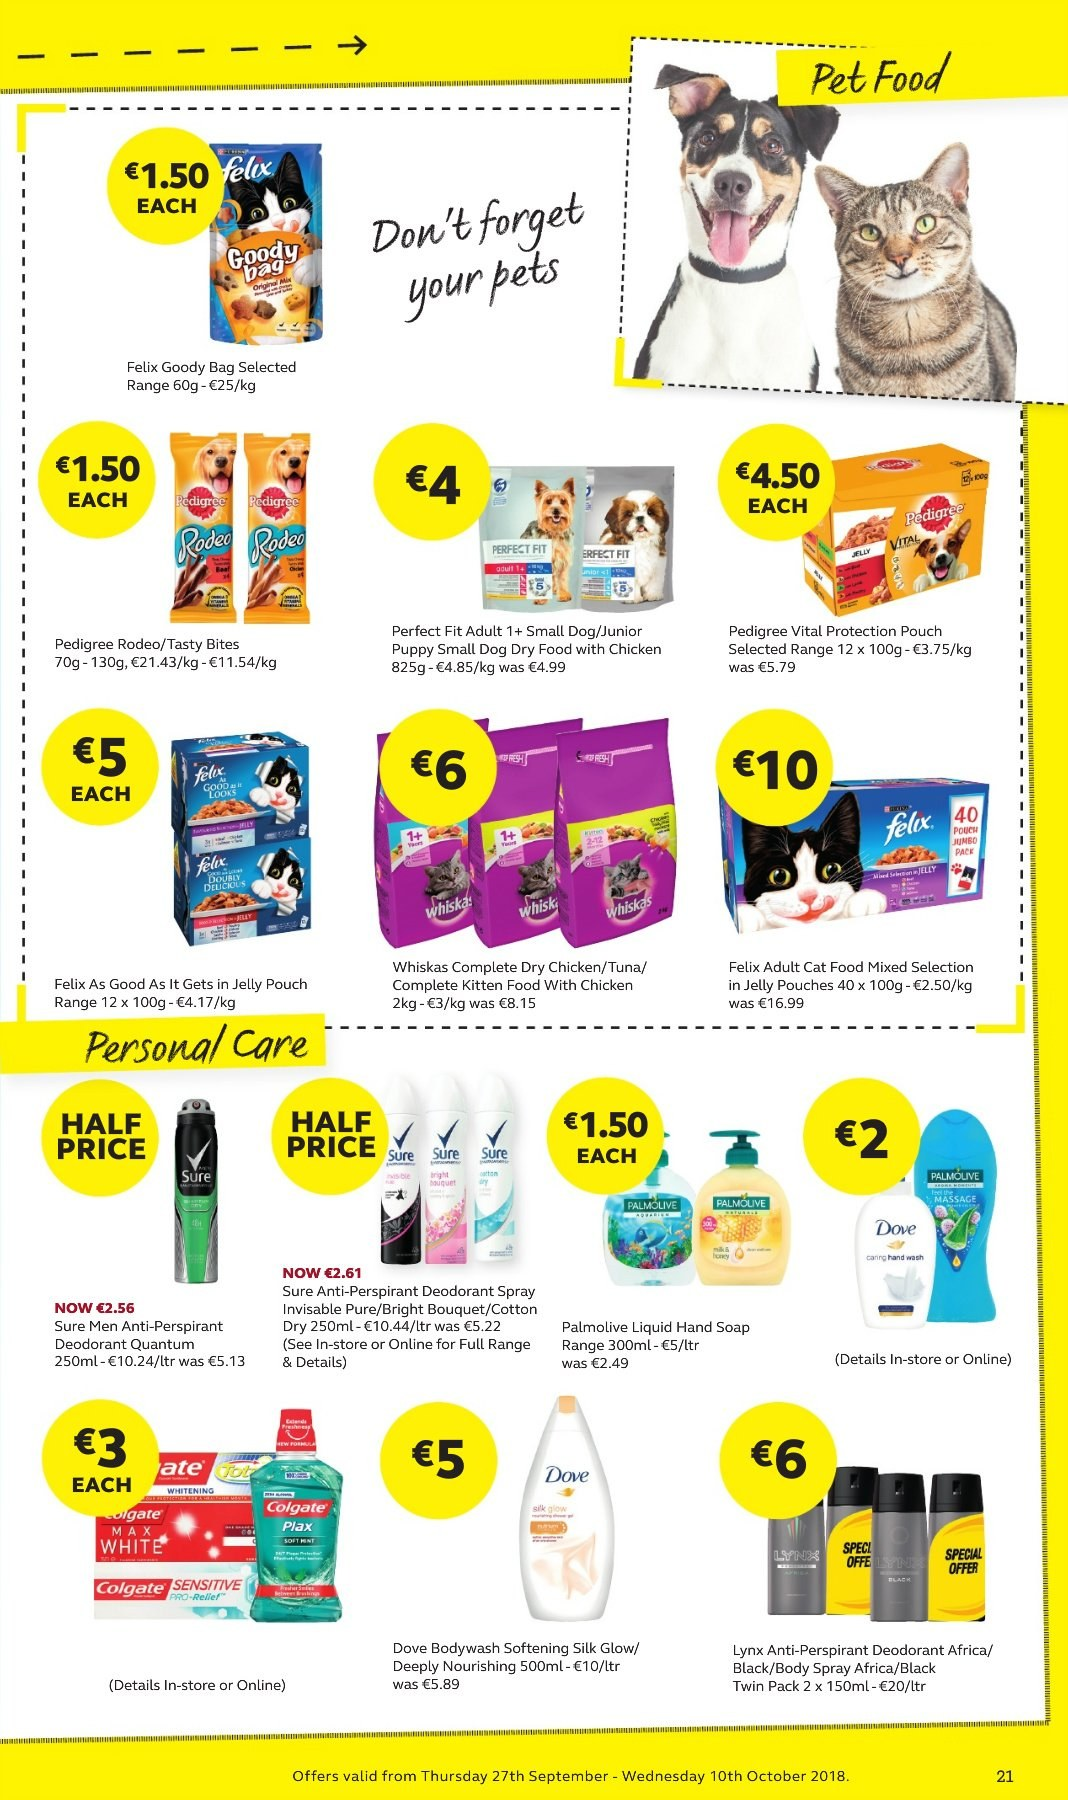 SuperValu offer  - 27.9.2018 - 10.10.2018 - Sales products - tuna, jelly, Silk, Dove, hand soap, hand wash, Palmolive, soap, Colgate, Plax, body spray, anti-perspirant, Sure, deodorant, animal food, cat food, Whiskas, Pedigree, Felix, Vital Proteins. Page 21.